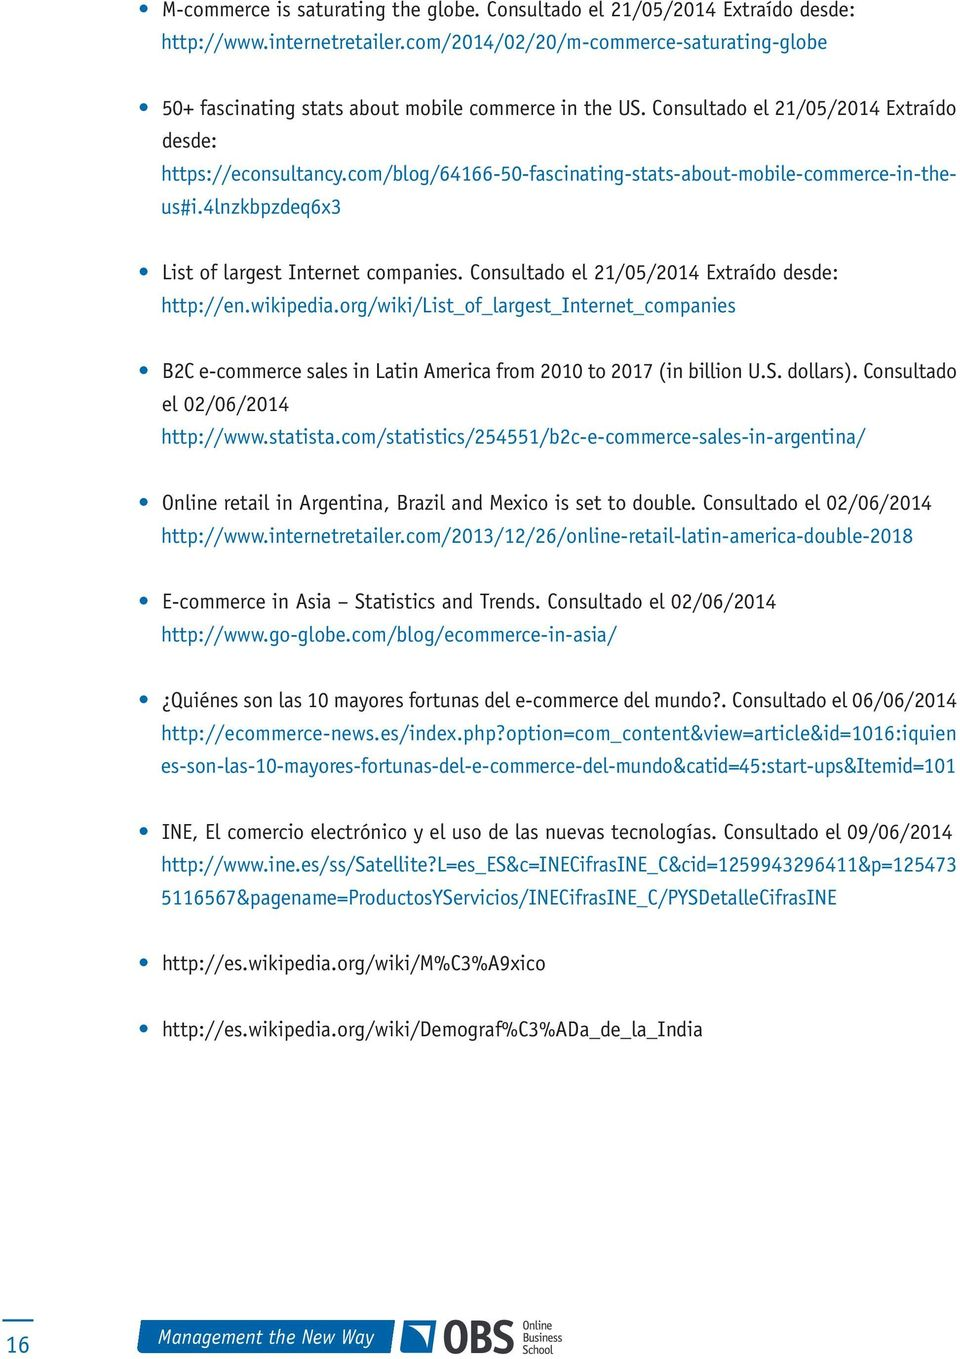 com/blog/64166-50-fascinating-stats-about-mobile-commerce-in-theus#i.4lnzkbpzdeq6x3 List of largest Internet companies. Consultado el 21/05/2014 Extraído desde: http://en.wikipedia.